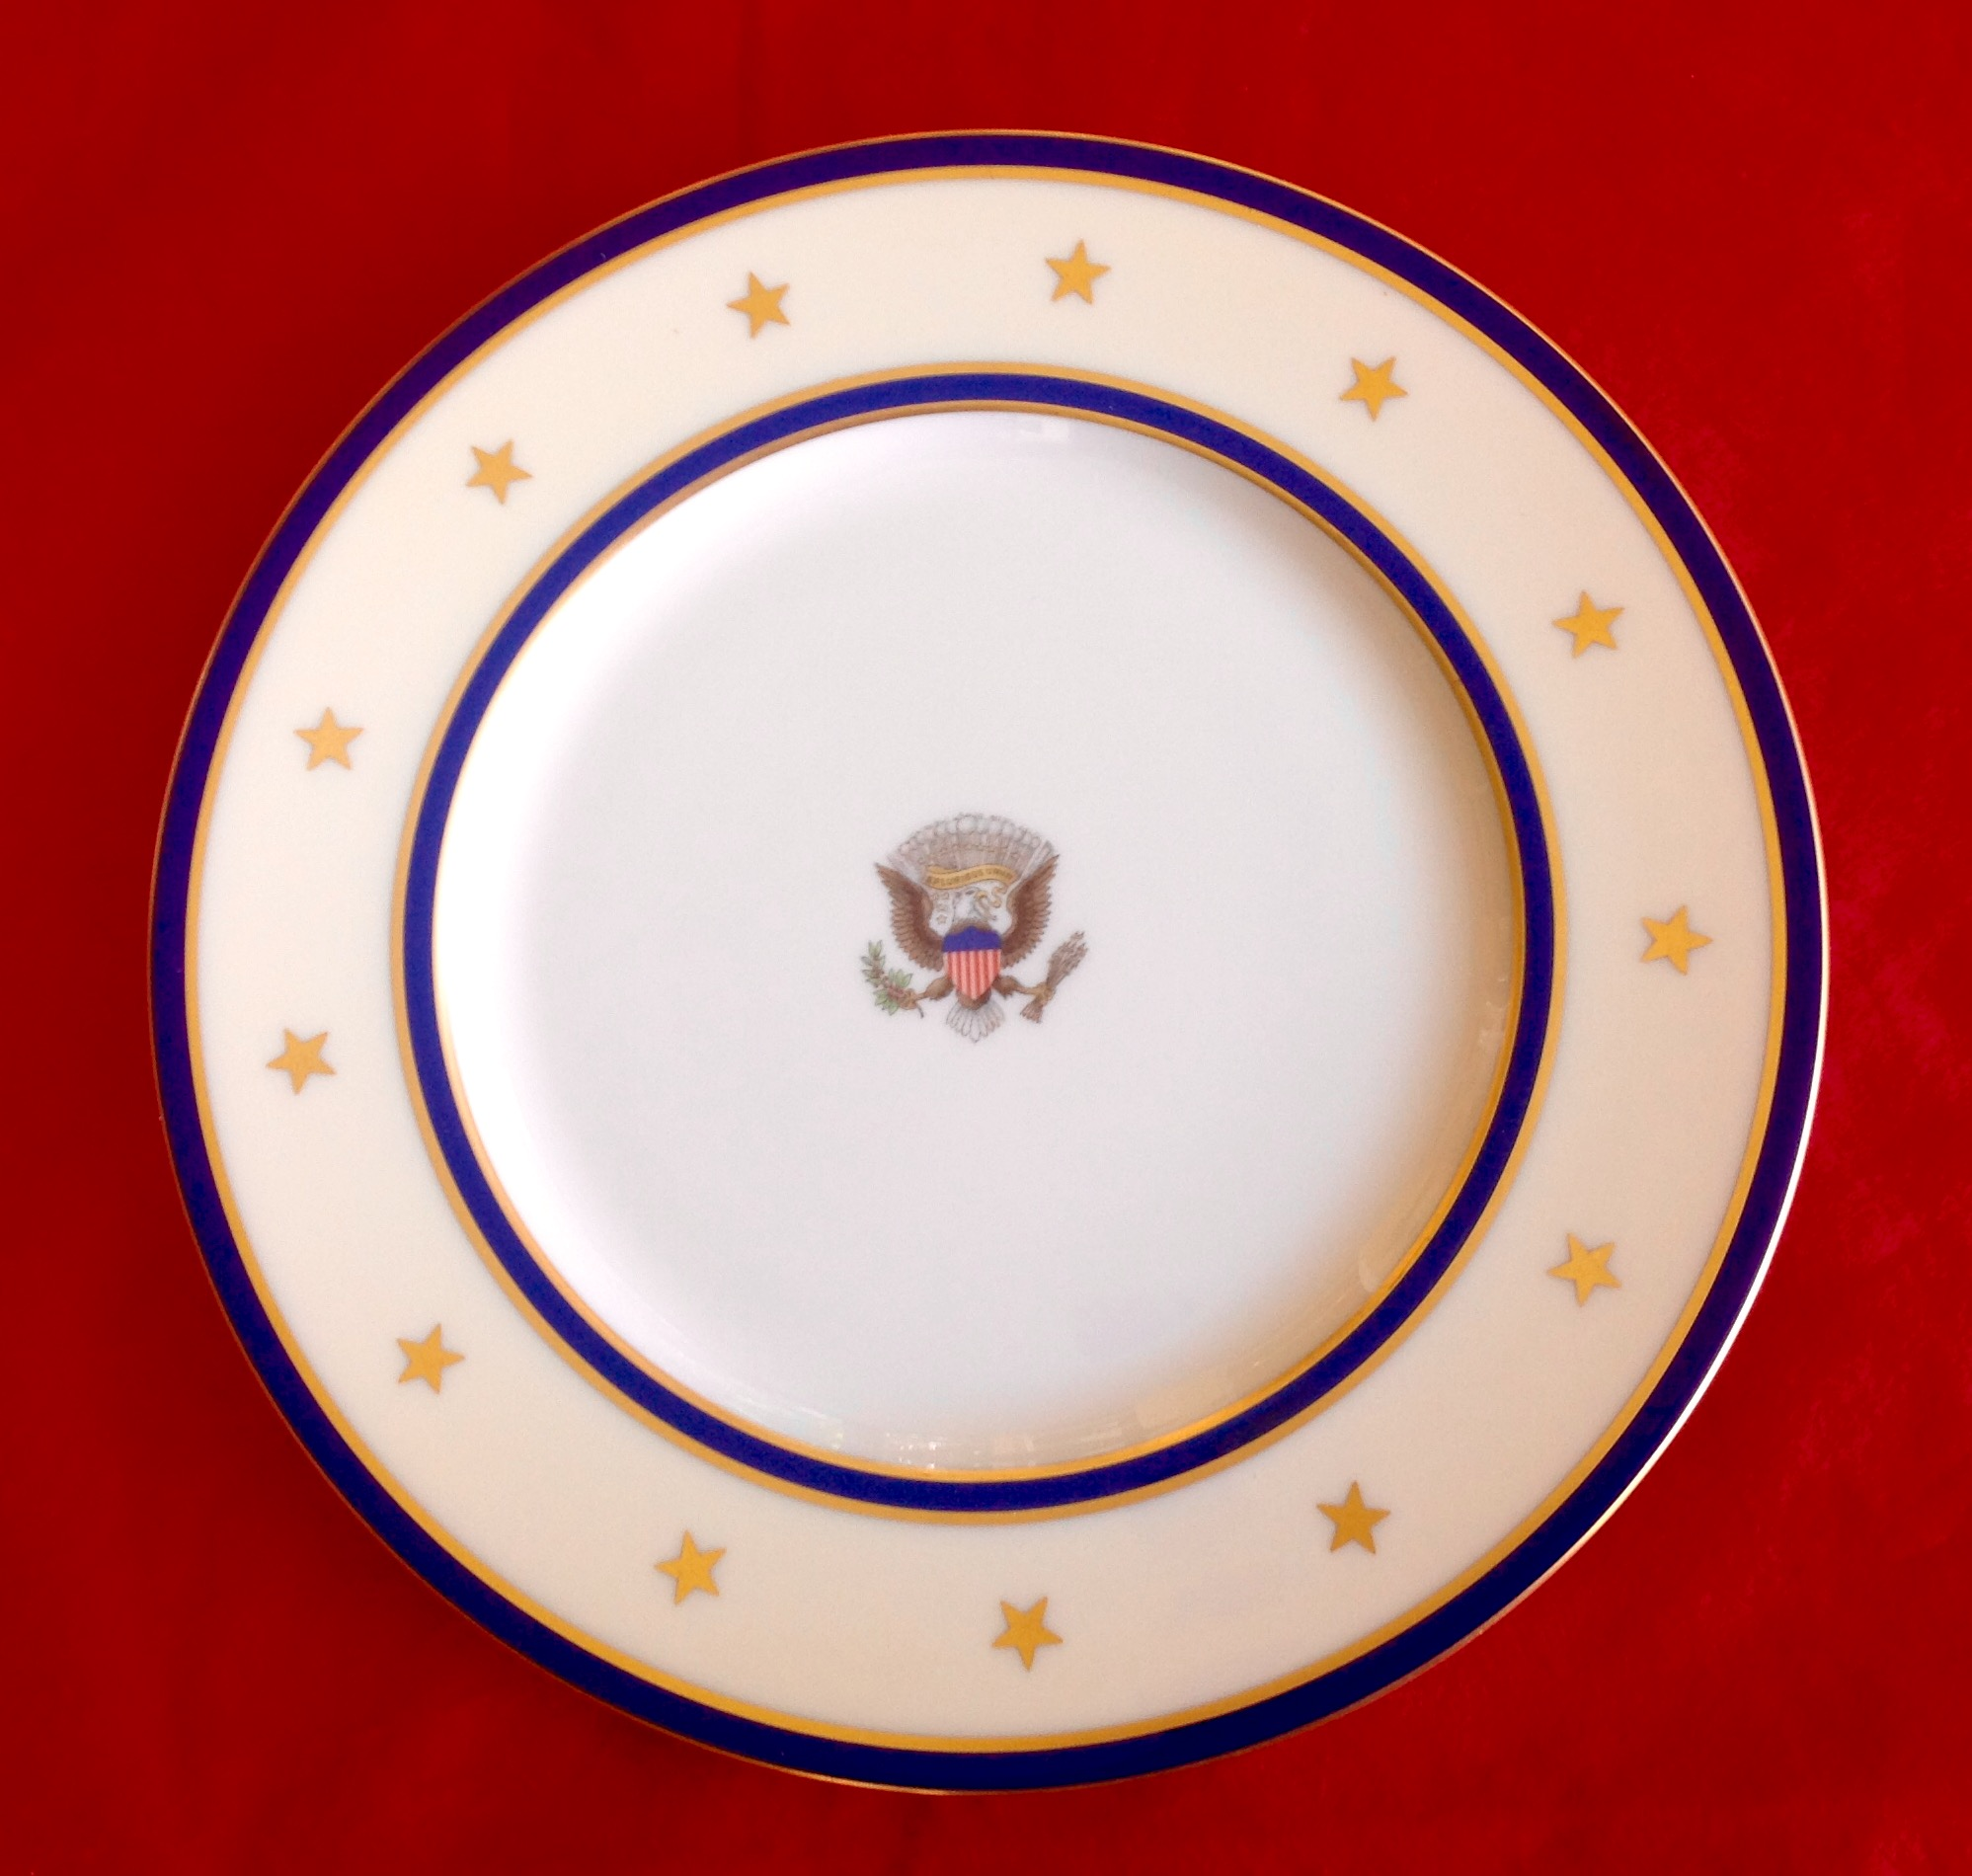 USS Williamsburg plate